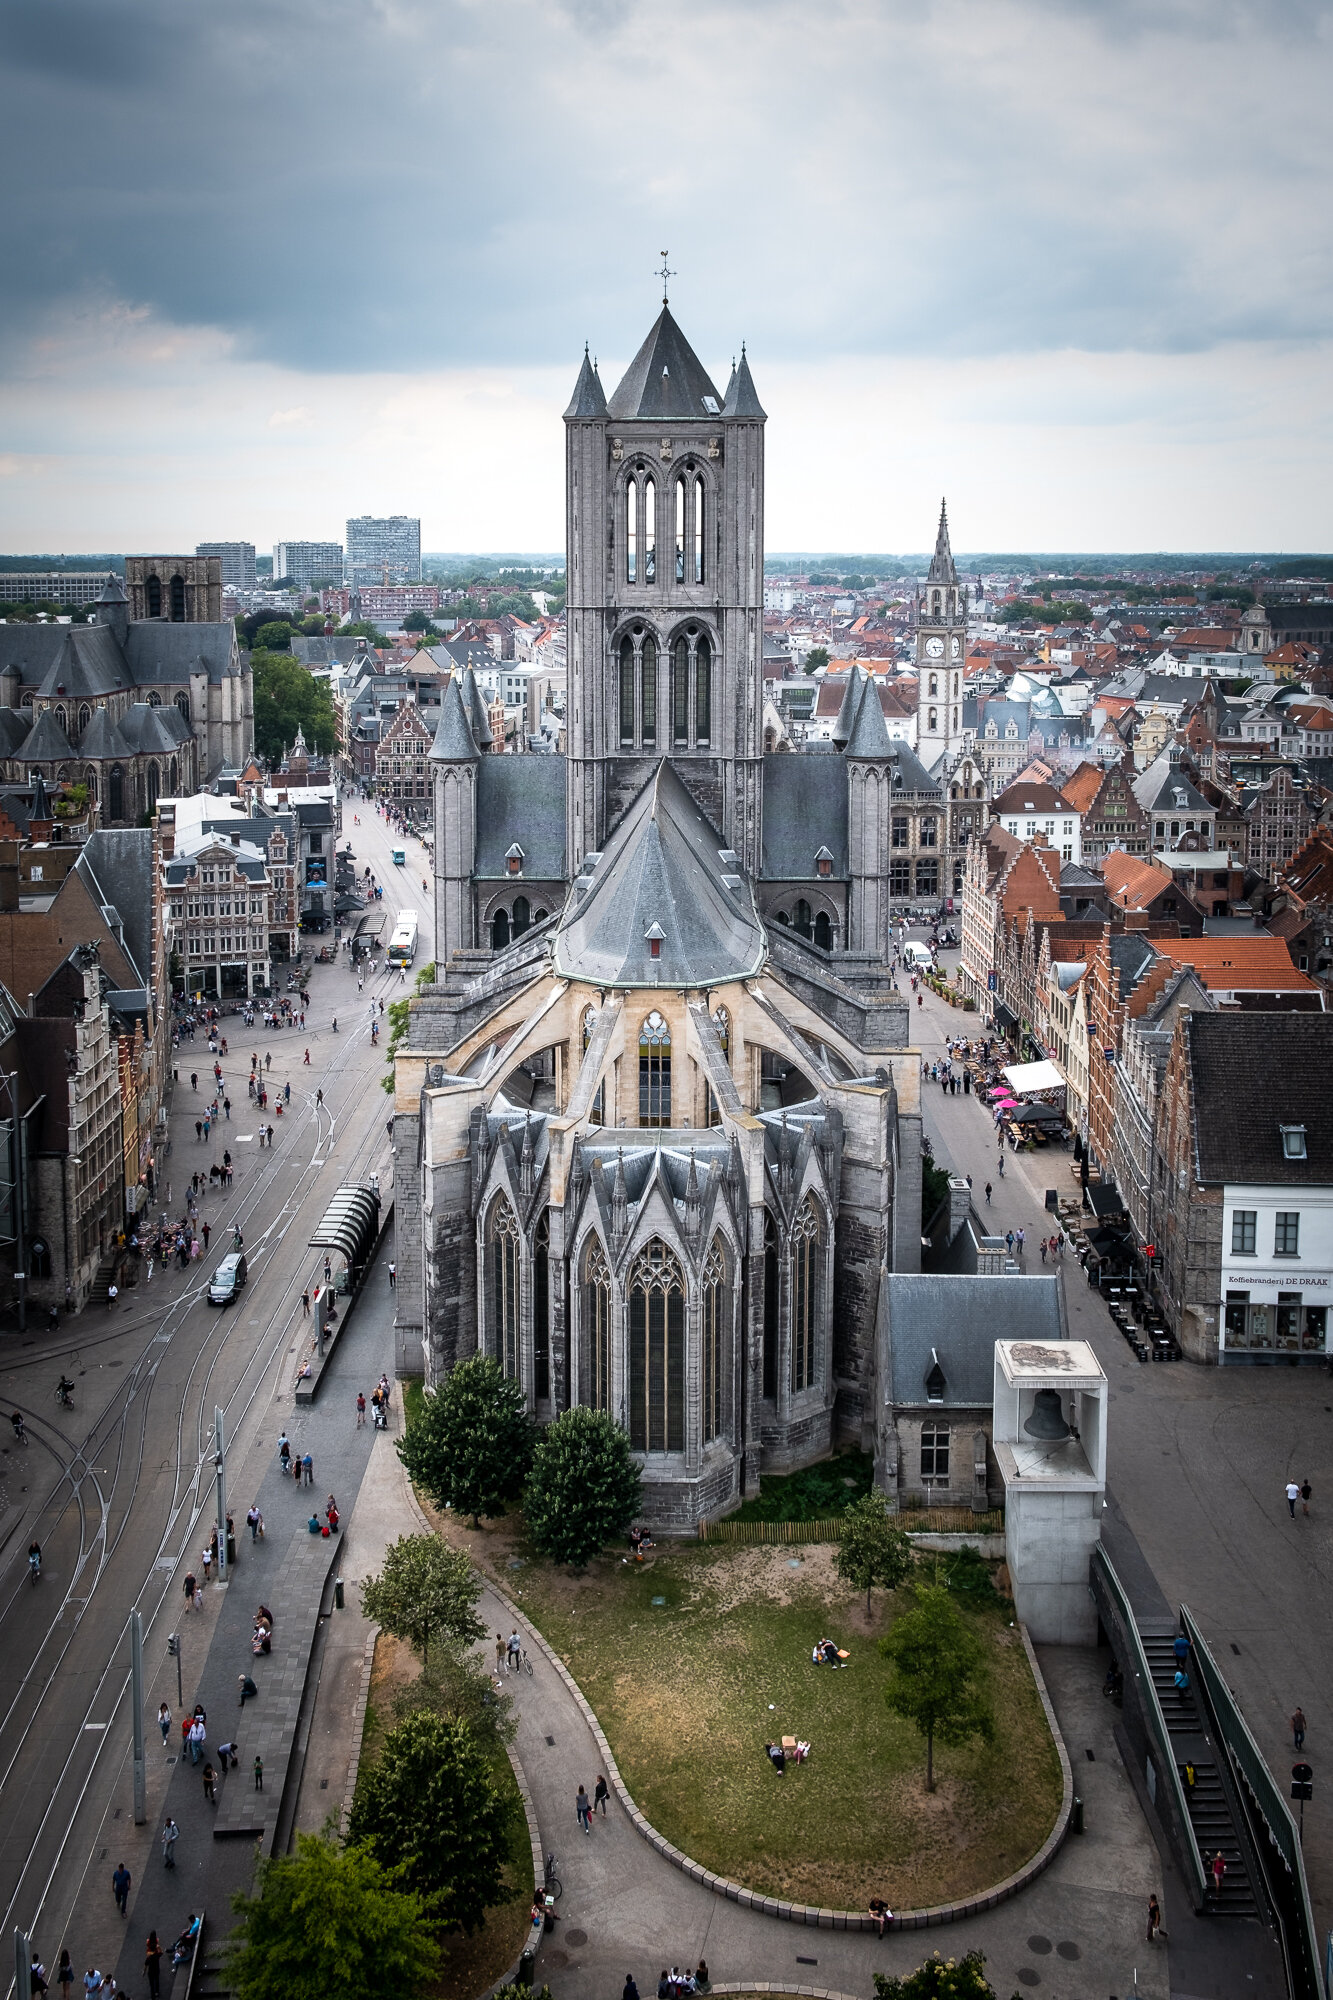 A view from the back of St. Nicholas' Church from the top of the Belfry of Ghent